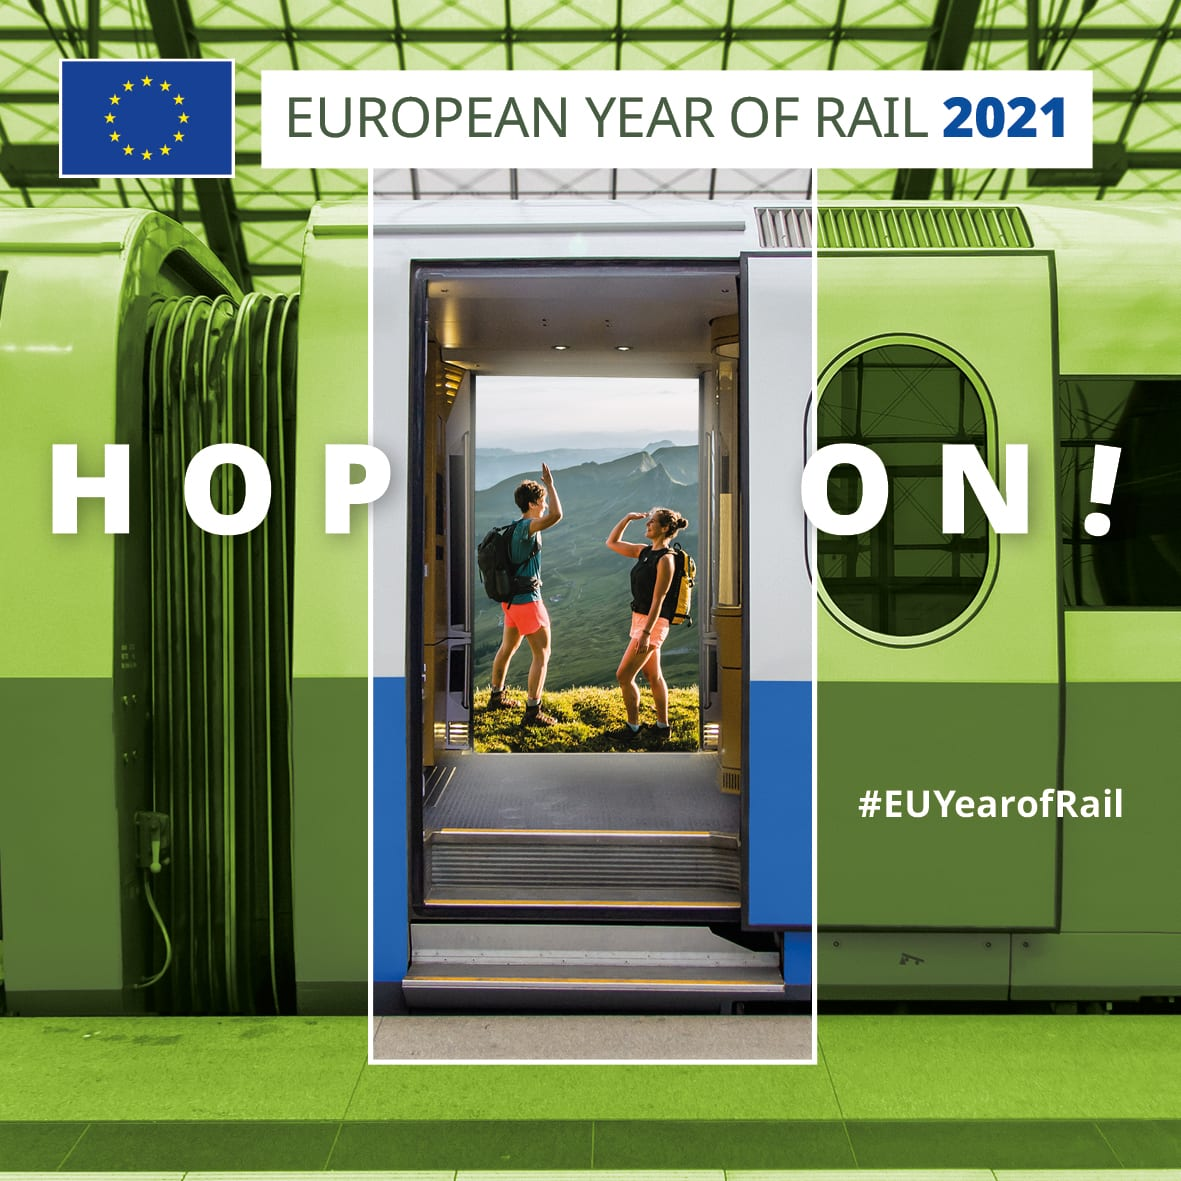 OXplus welcomes the European Year of Rail!